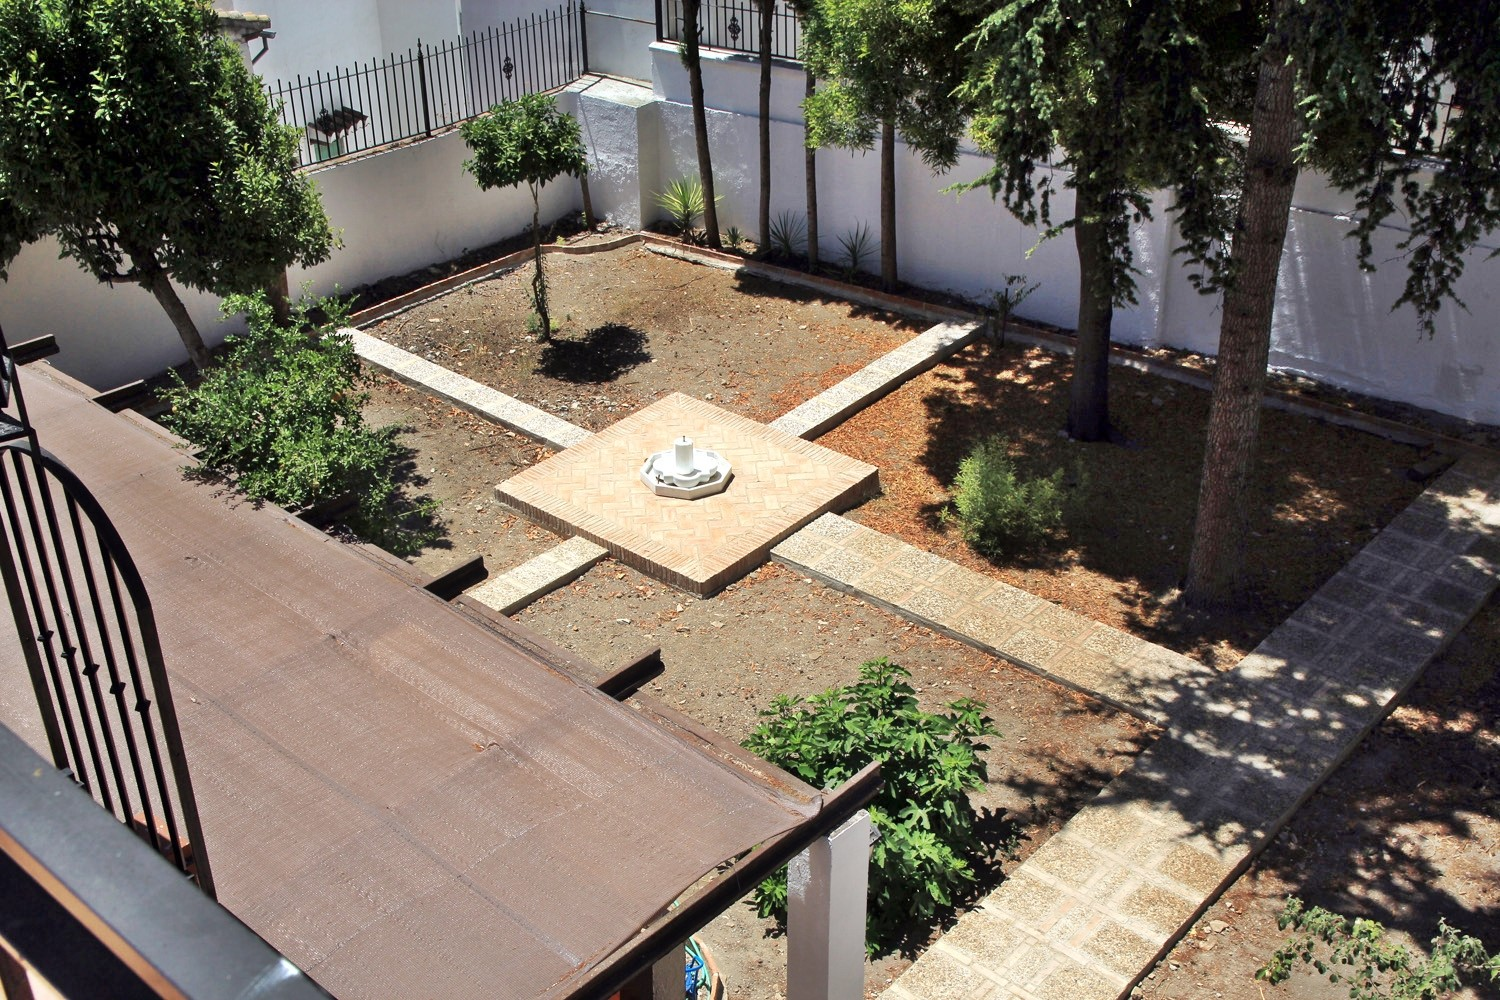 View on the garden from the roof terrace